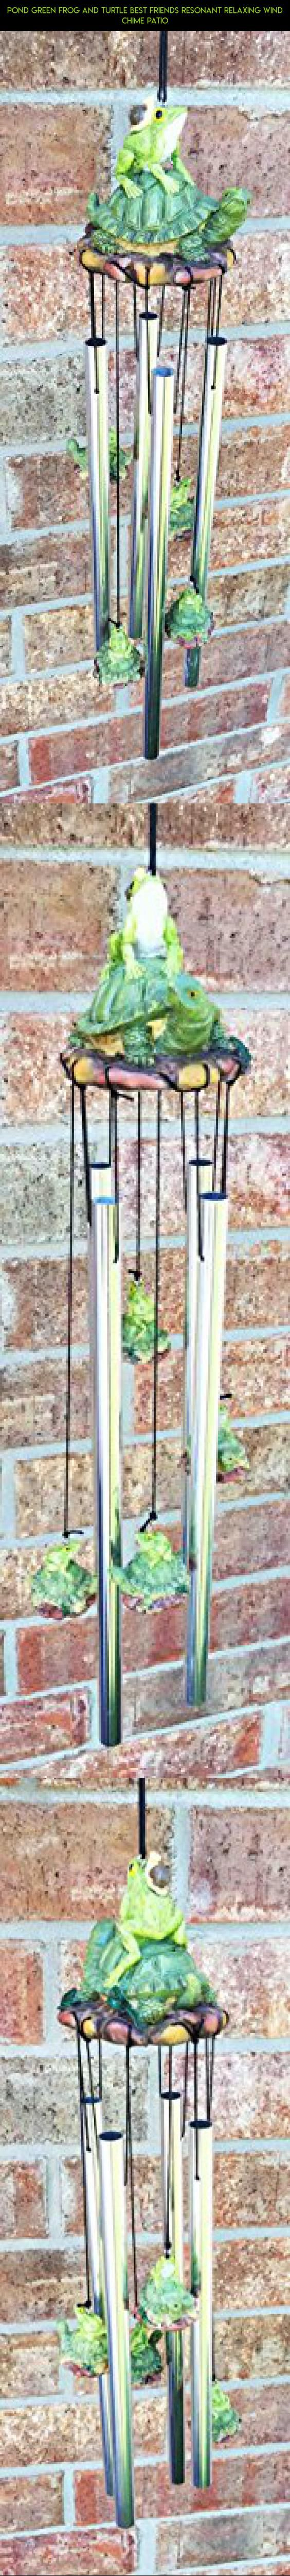 Pond Green Frog And Turtle Best Friends Resonant Relaxing Wind Chime Patio #gadgets #racing #frogs #technology #tech #camera #products #outdoor #decor #fpv #drone #kit #plans #parts #shopping